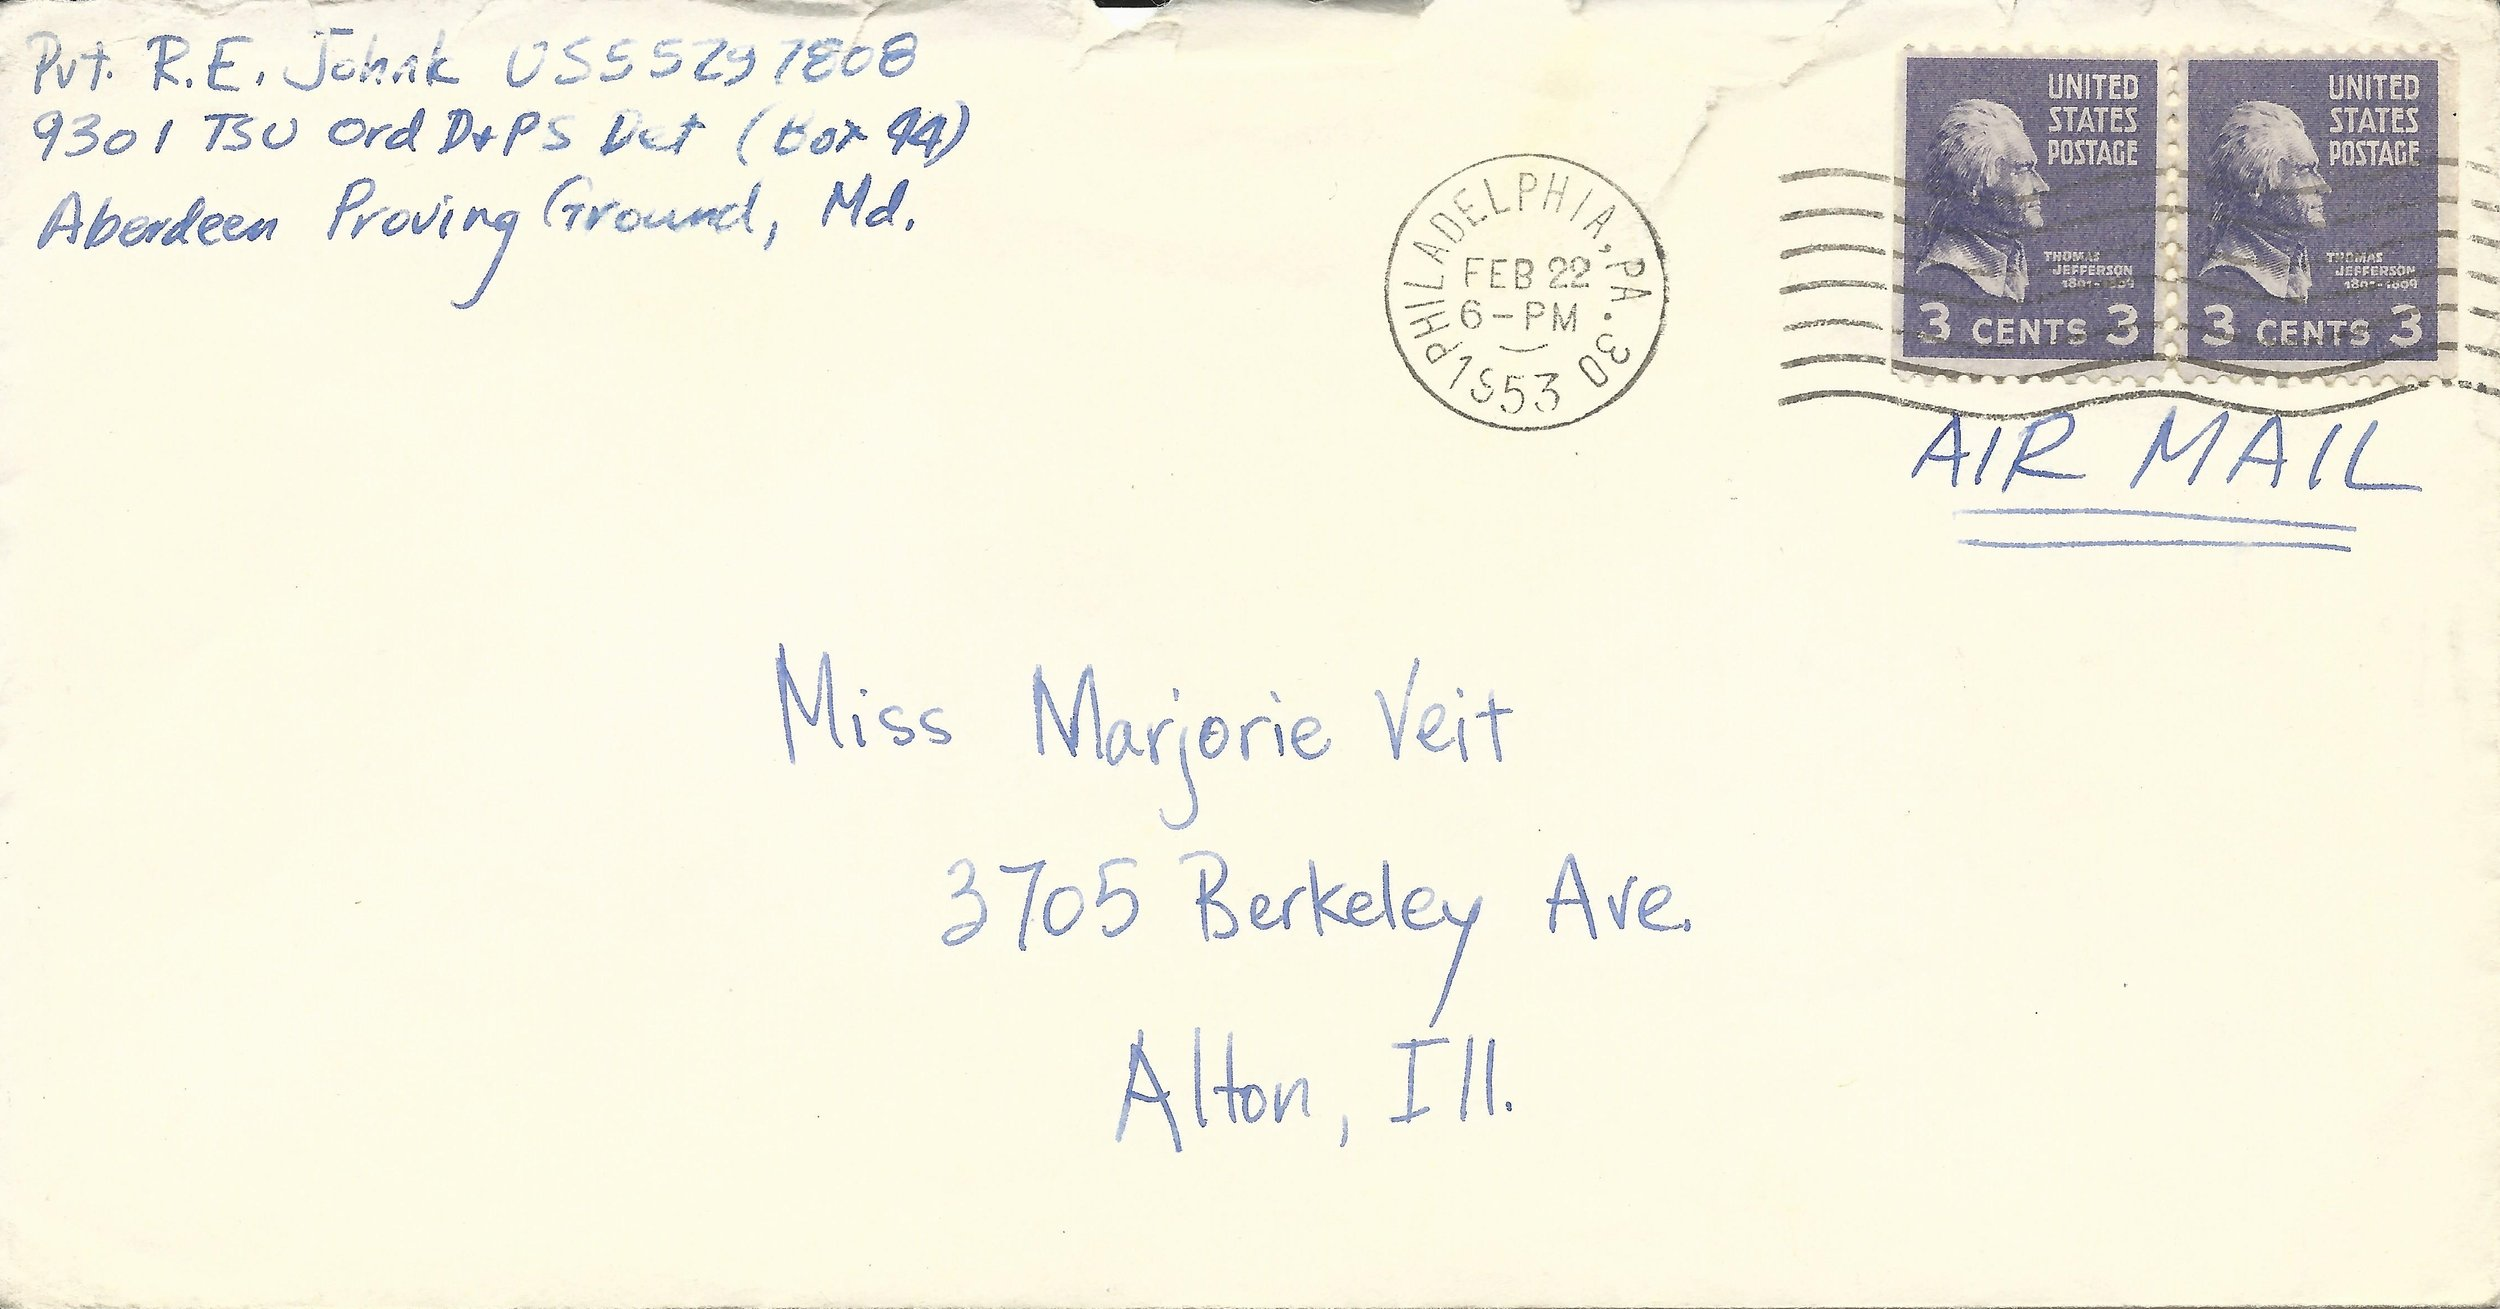 Feb. 21, 1953 (Bob) Envelope